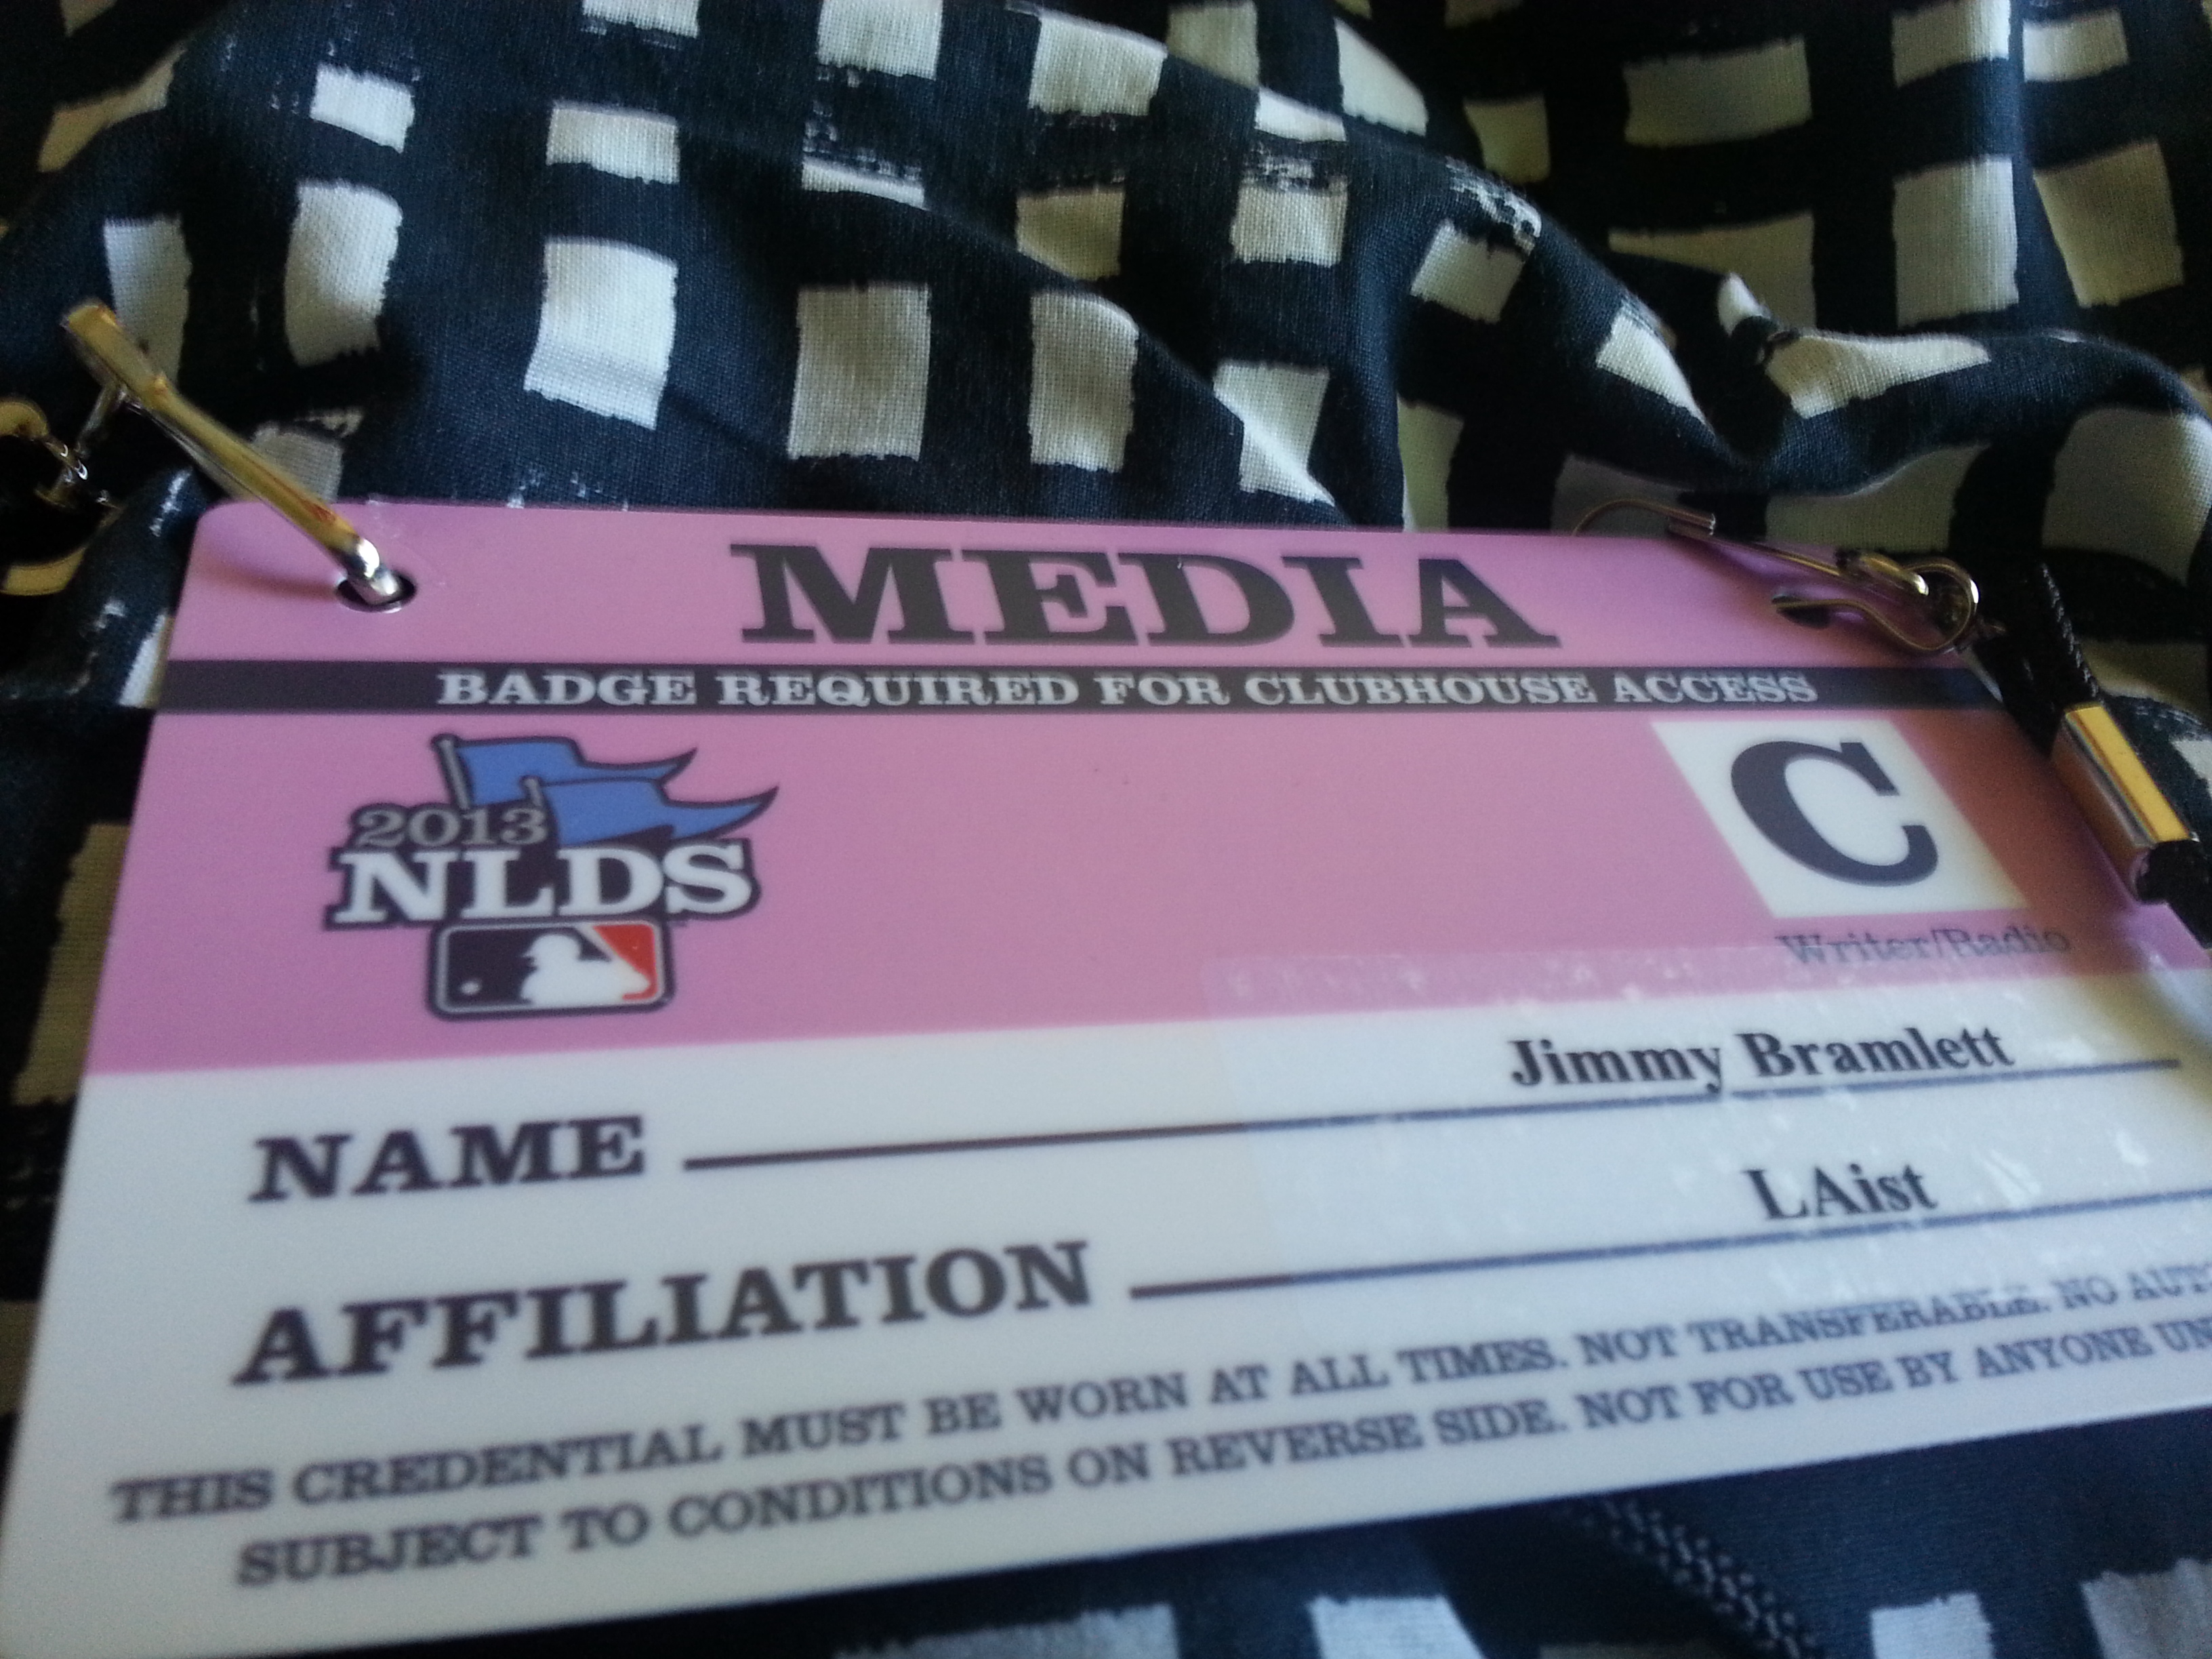 NLDS Credential